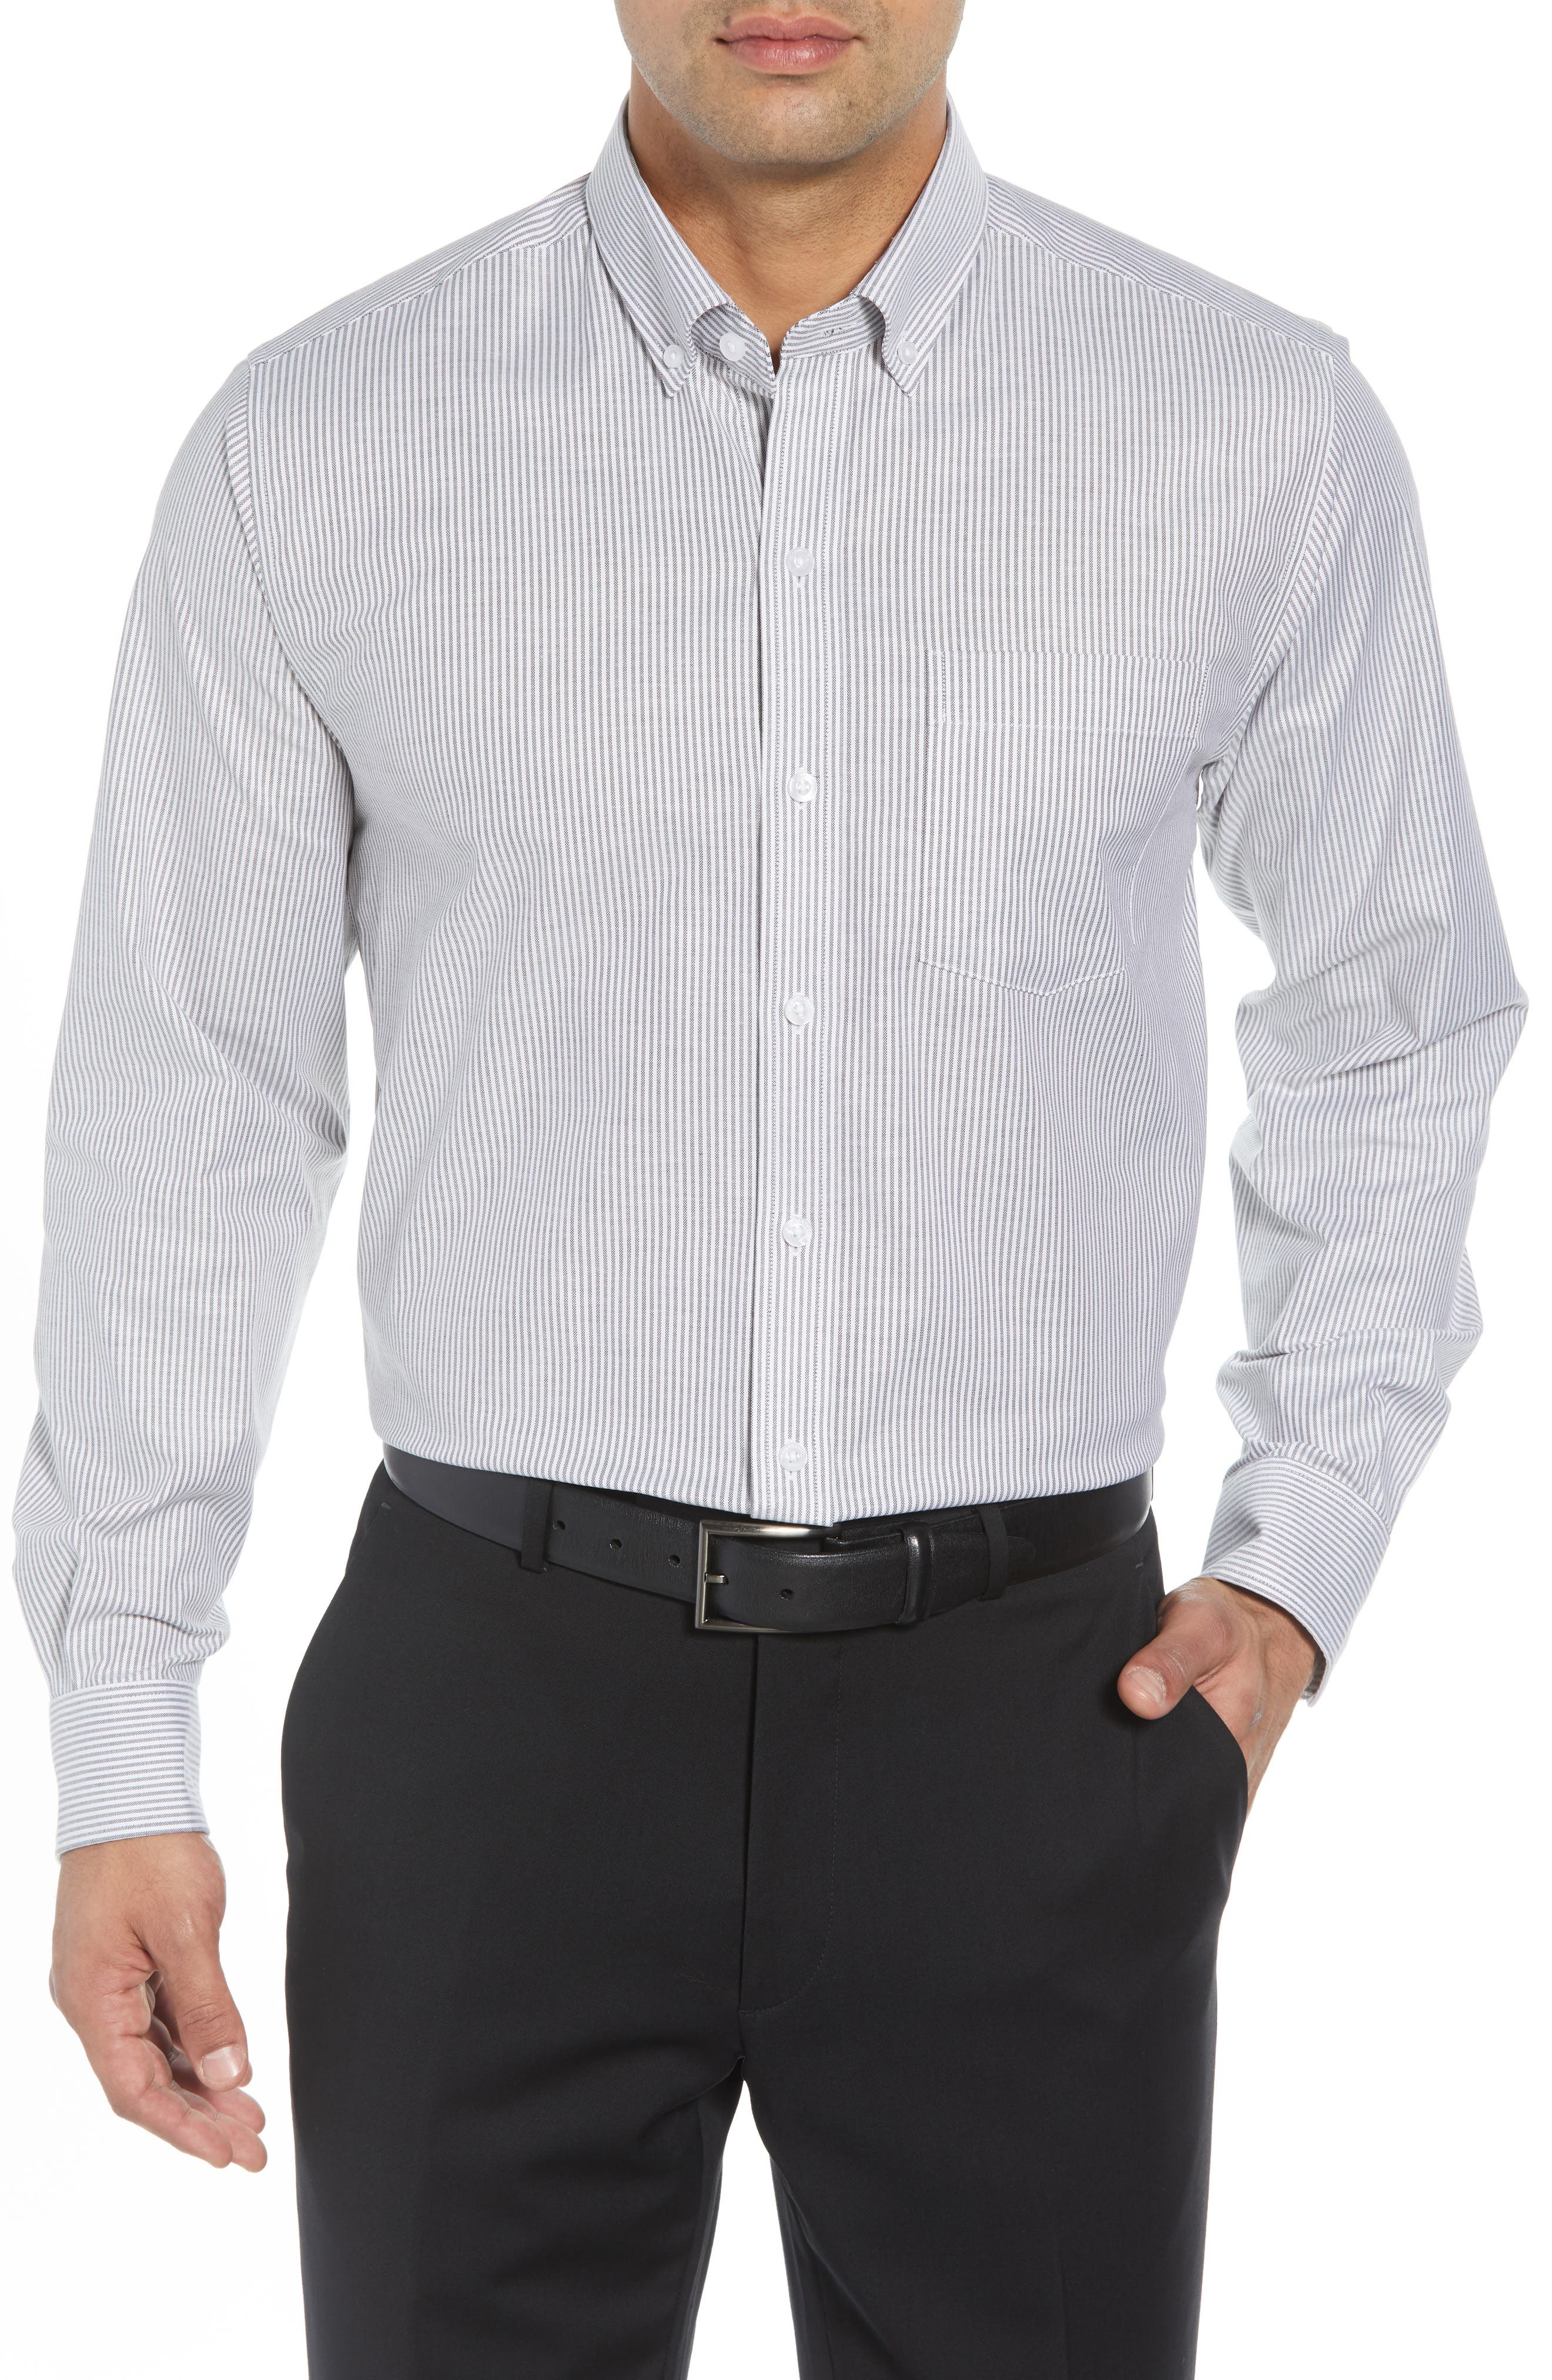 Regular Fit Stripe Stretch Oxford Shirt,                             Main thumbnail 1, color,                             CHARCOAL